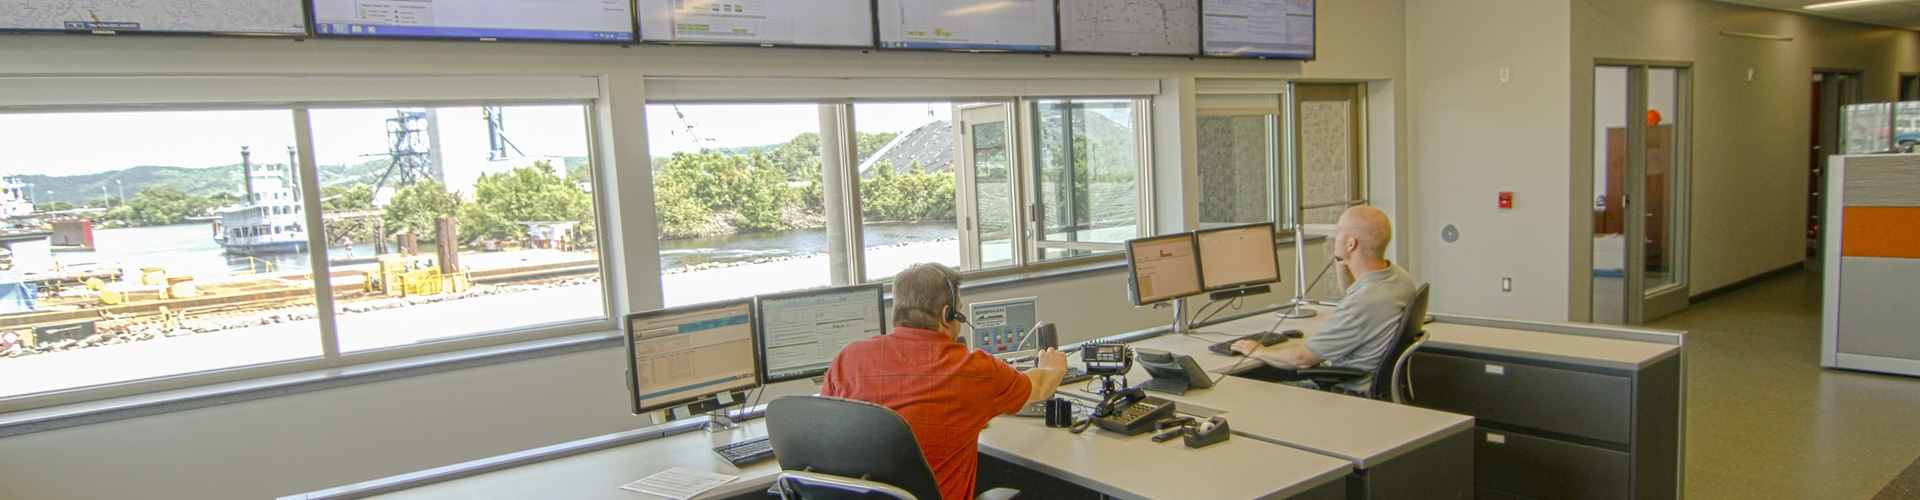 harbor management service, marine assists, towboat assists, lock assists, railroad bridge assists, lock and dam 8 assists, lock and dam 7 assists, barge assists, carrier assists